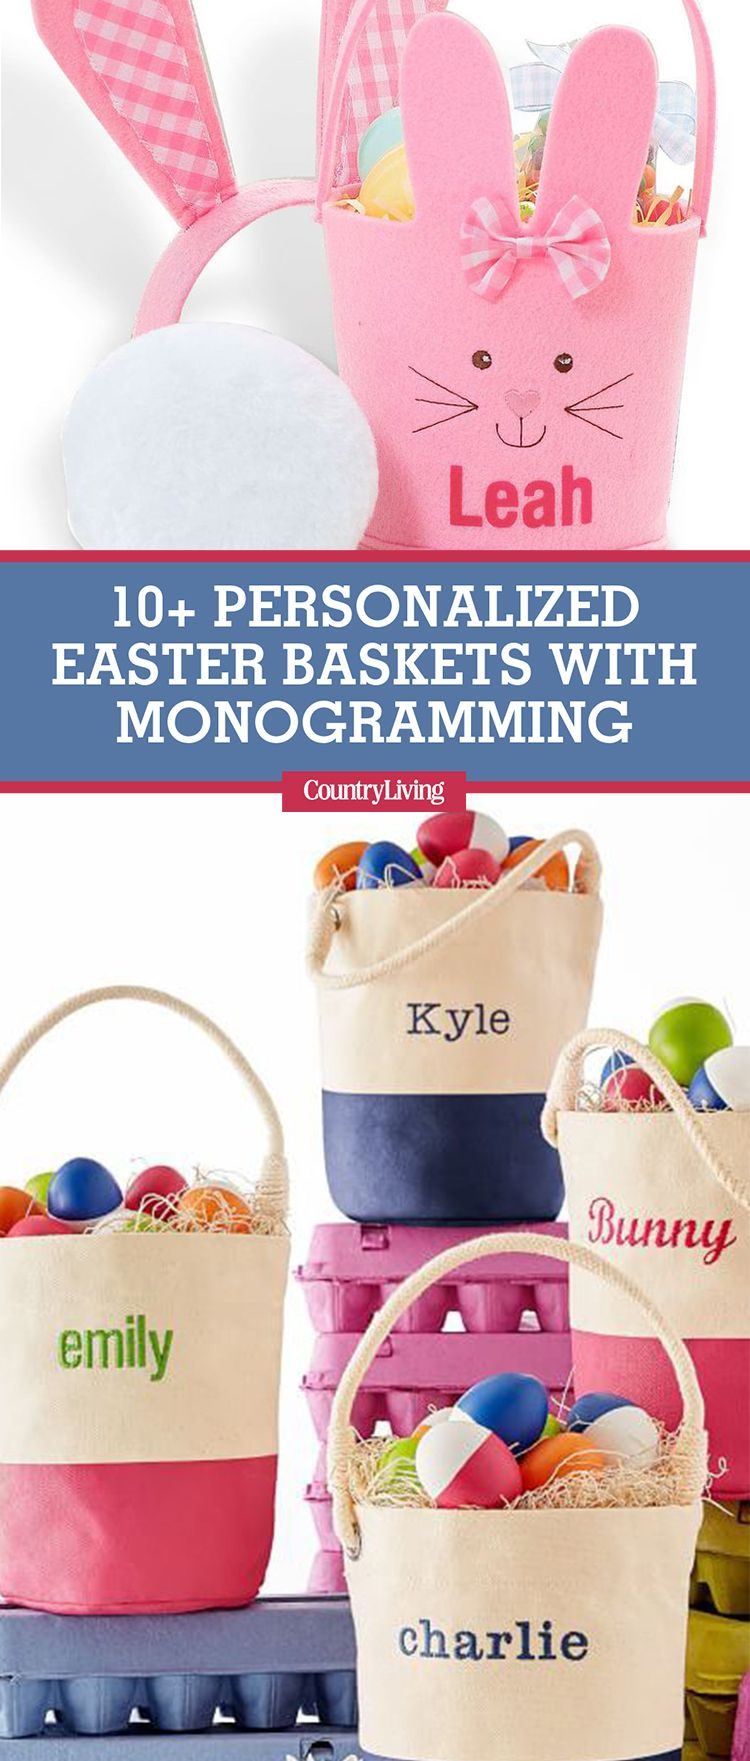 12 personalized easter baskets cute monogrammed easter basket ideas negle Gallery